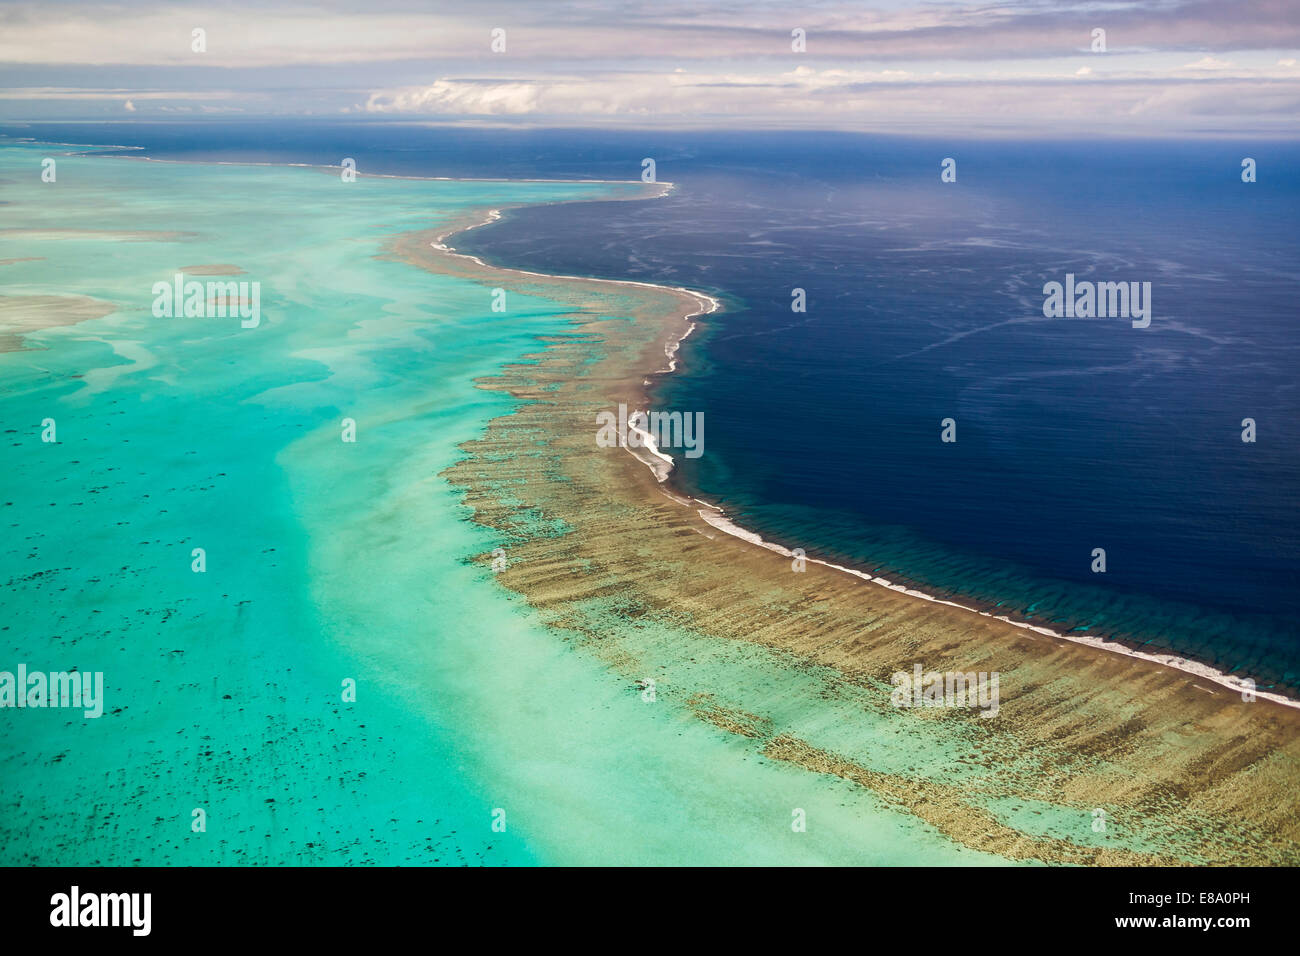 Barrier of the coral reef of Grande Terre, New Caledonia - Stock Image